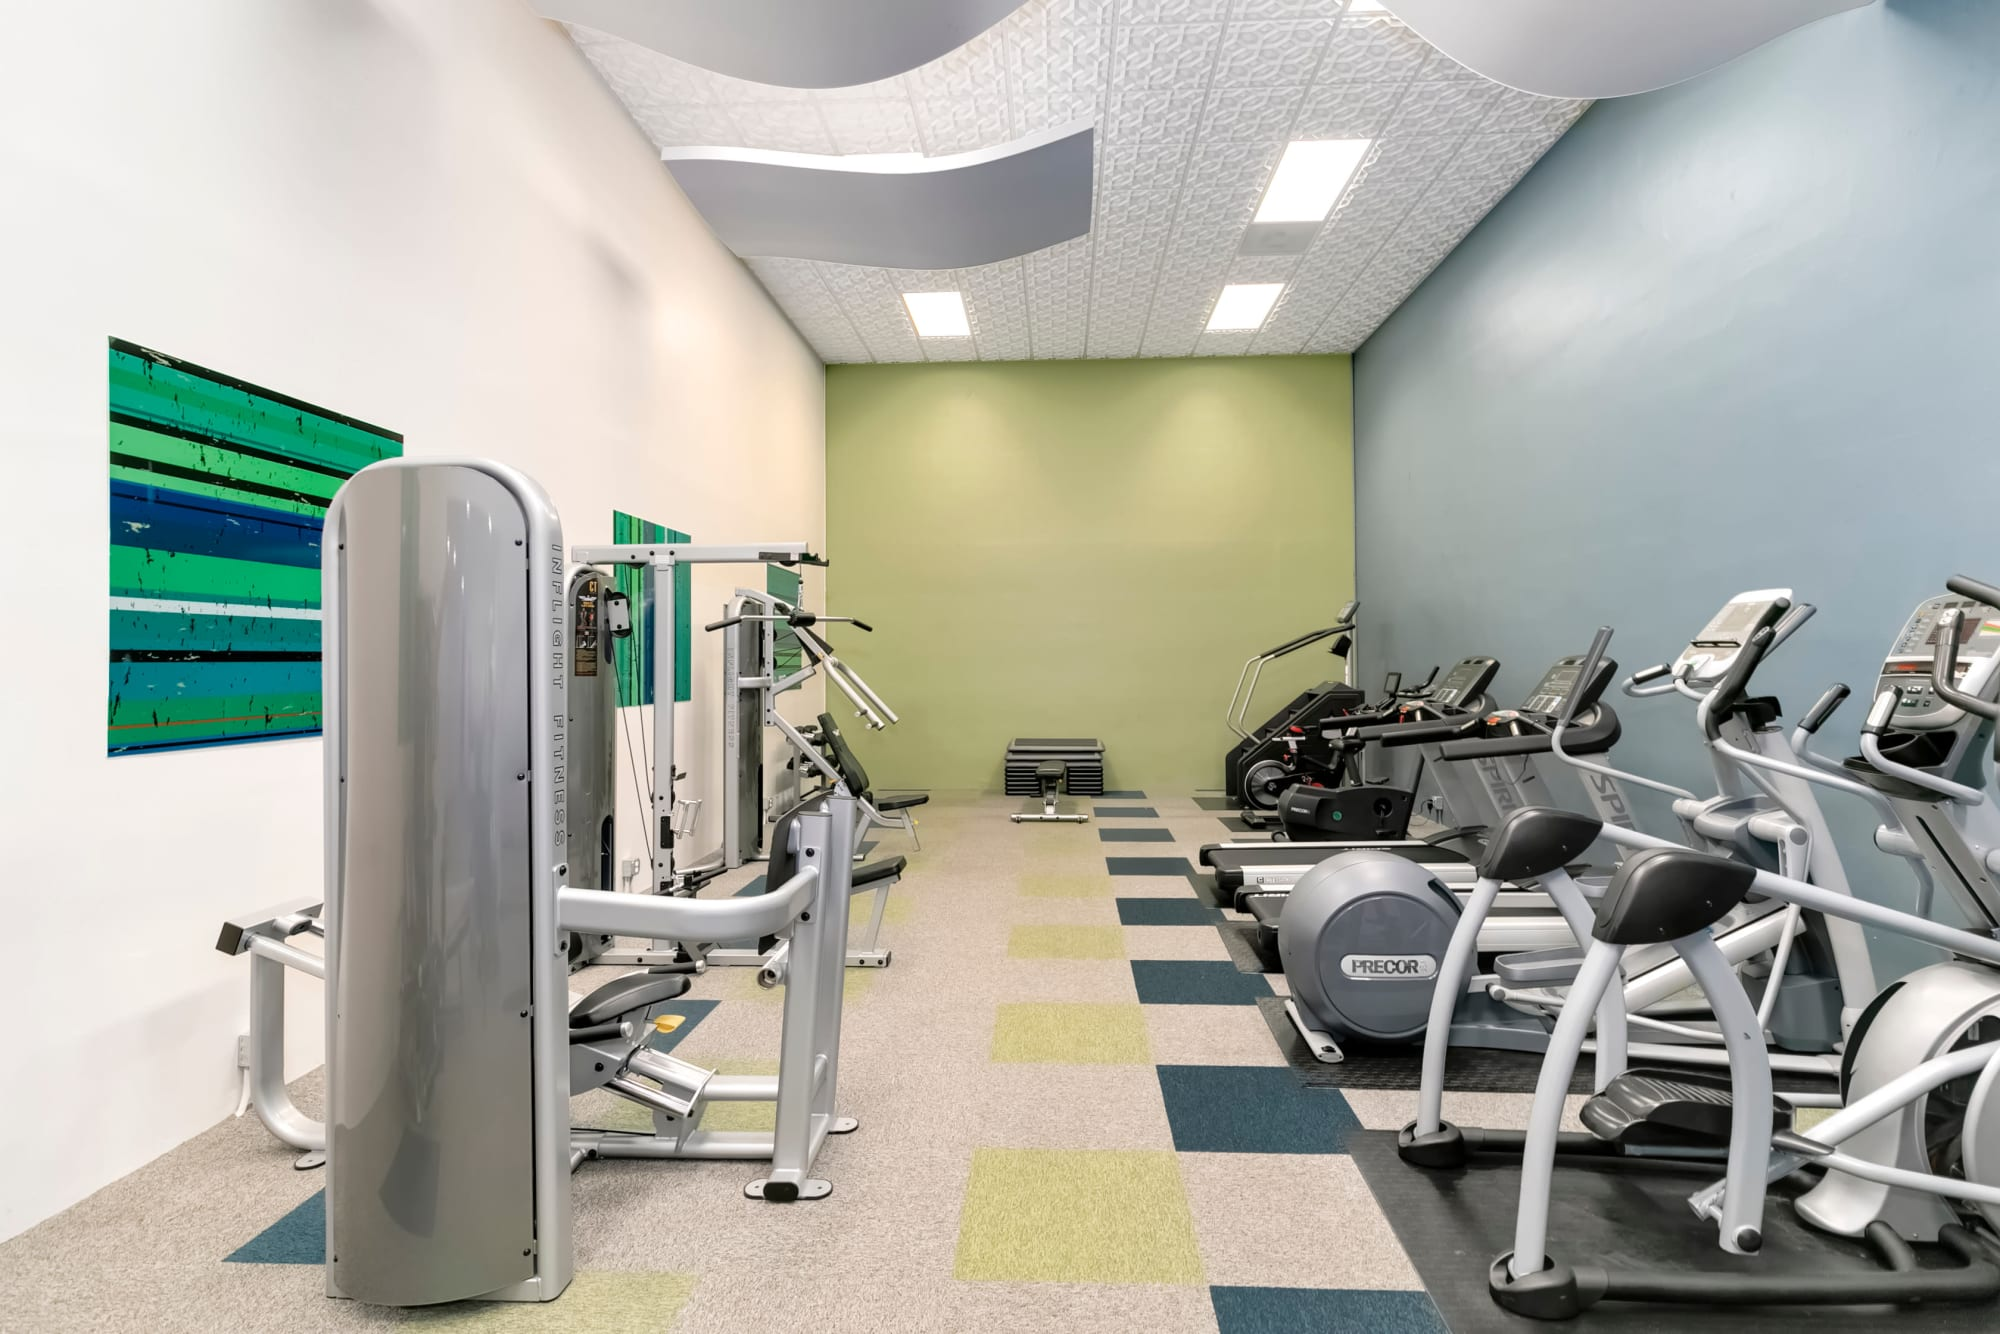 Fully Equipped Fitness Center with Cardio and Weight Machines